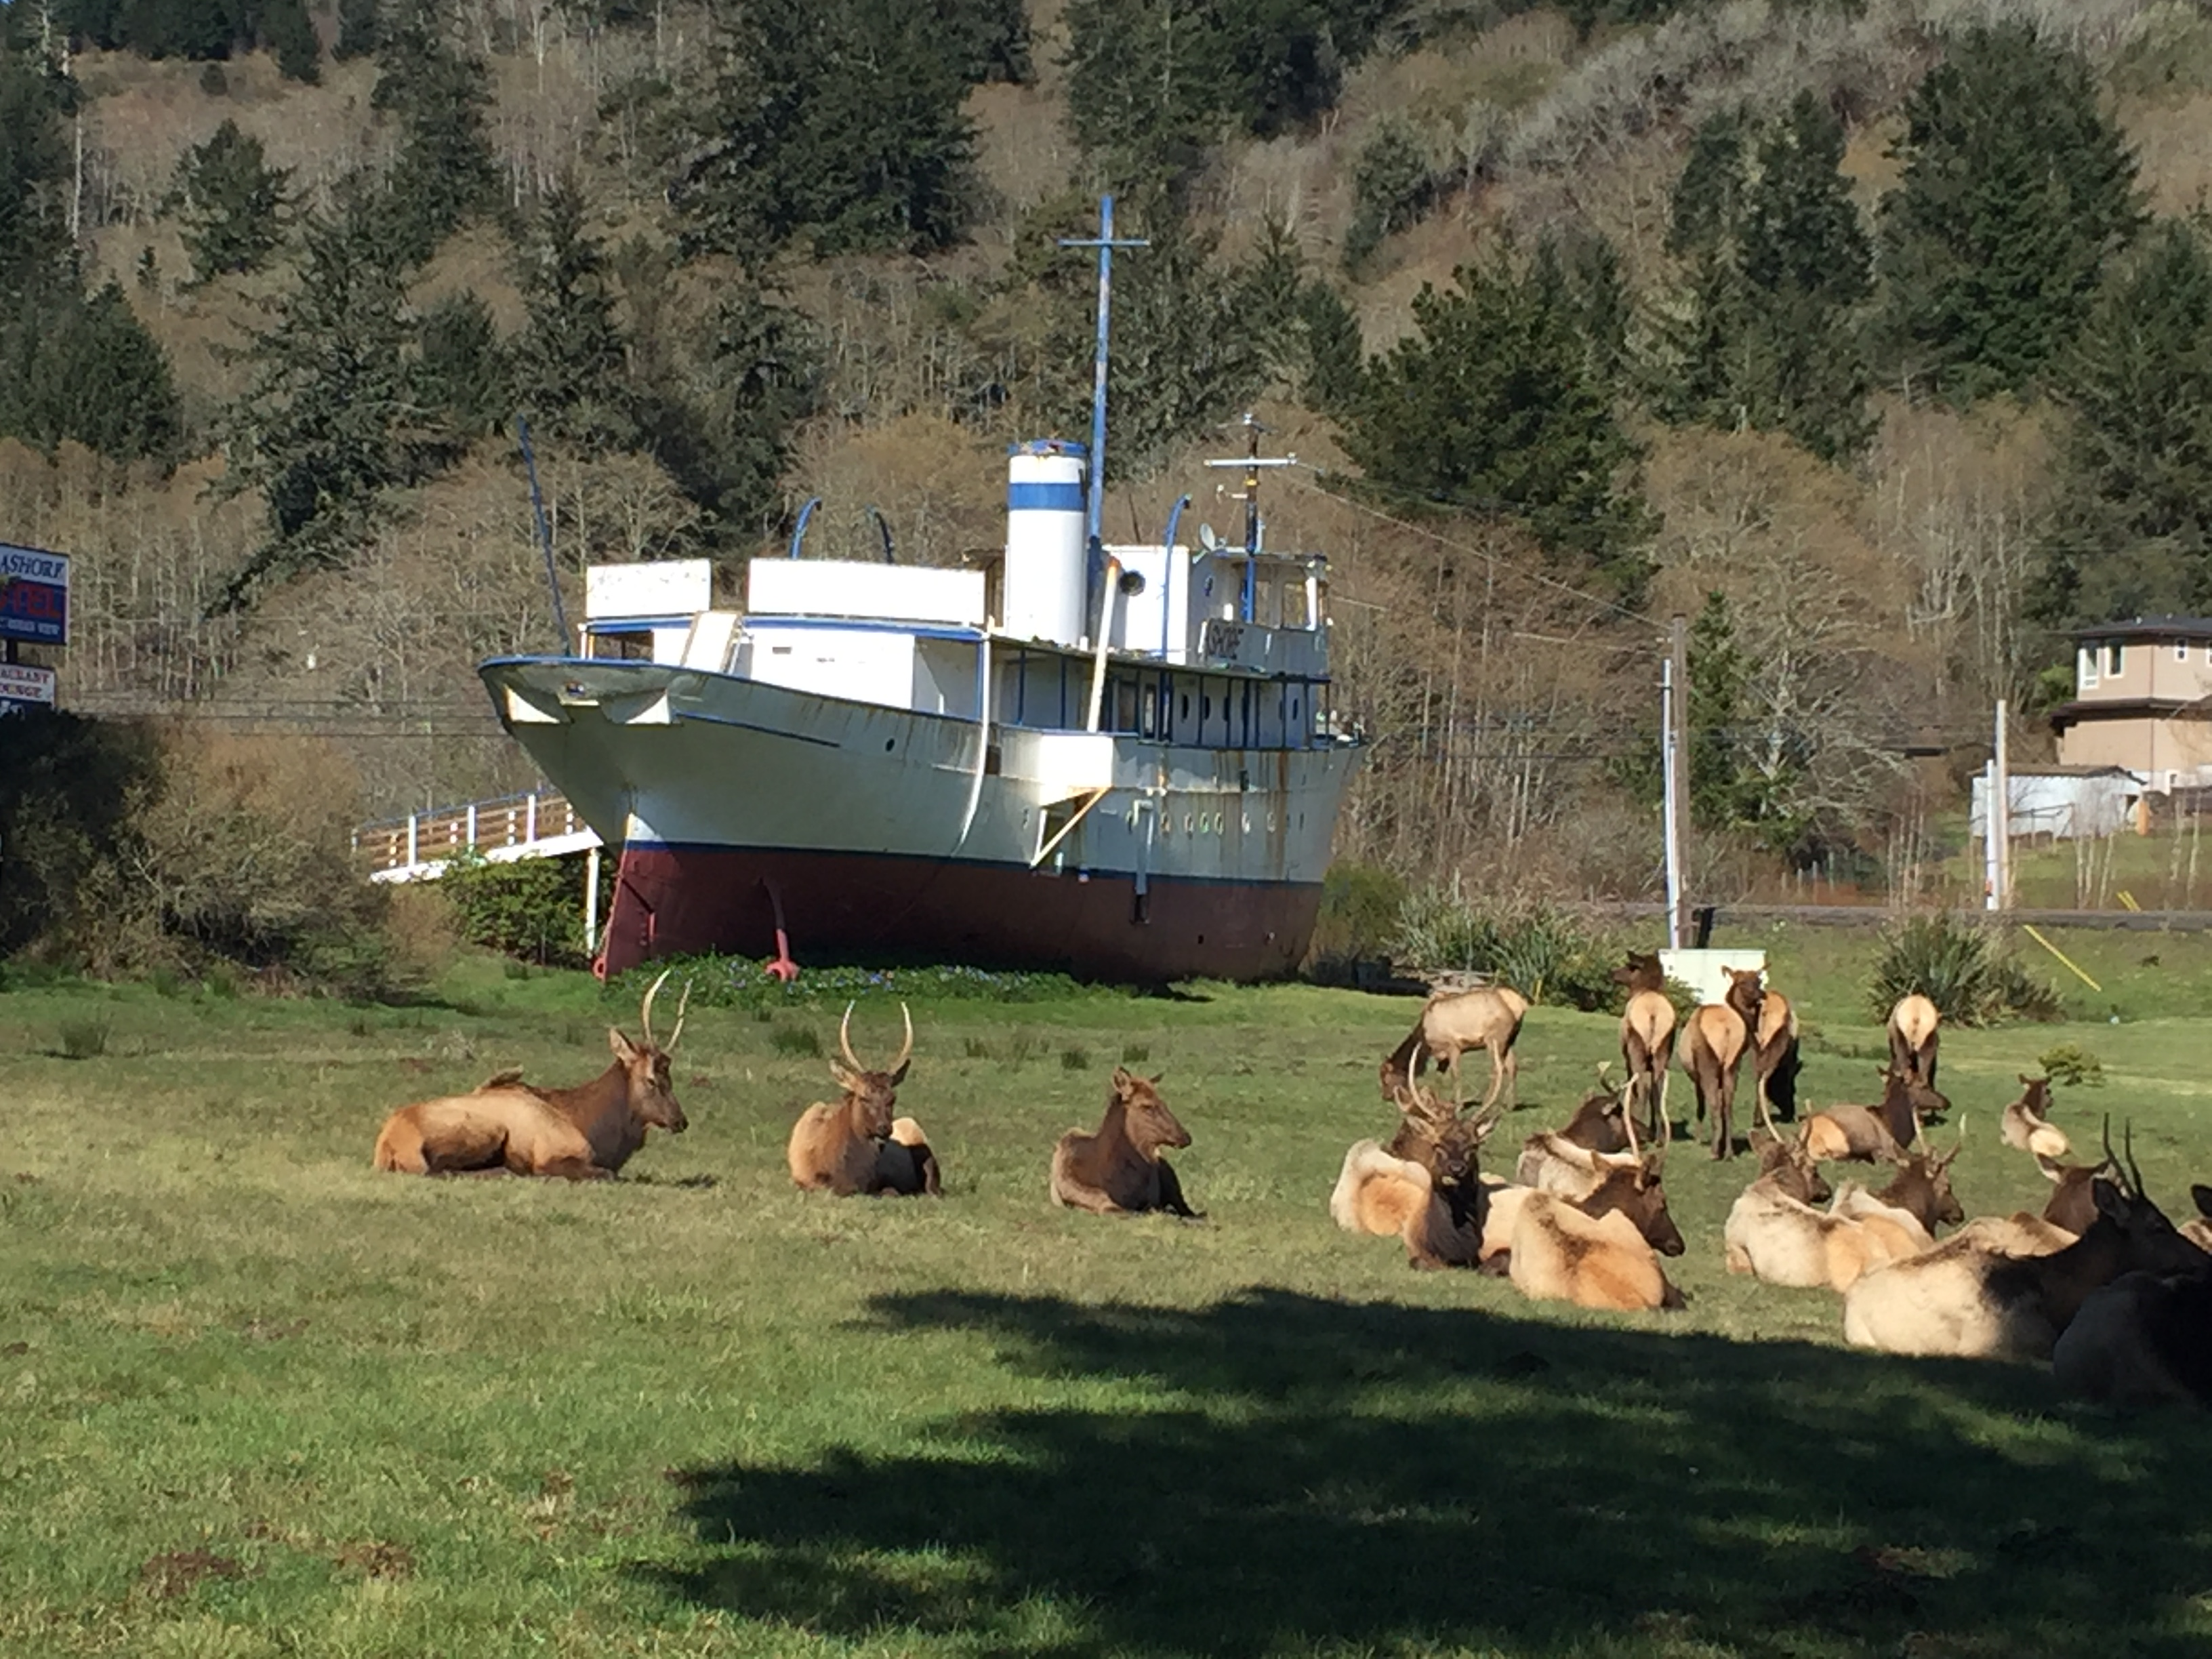 Local Wildlife in field, with a bit of history behind. Ship was built in 1925